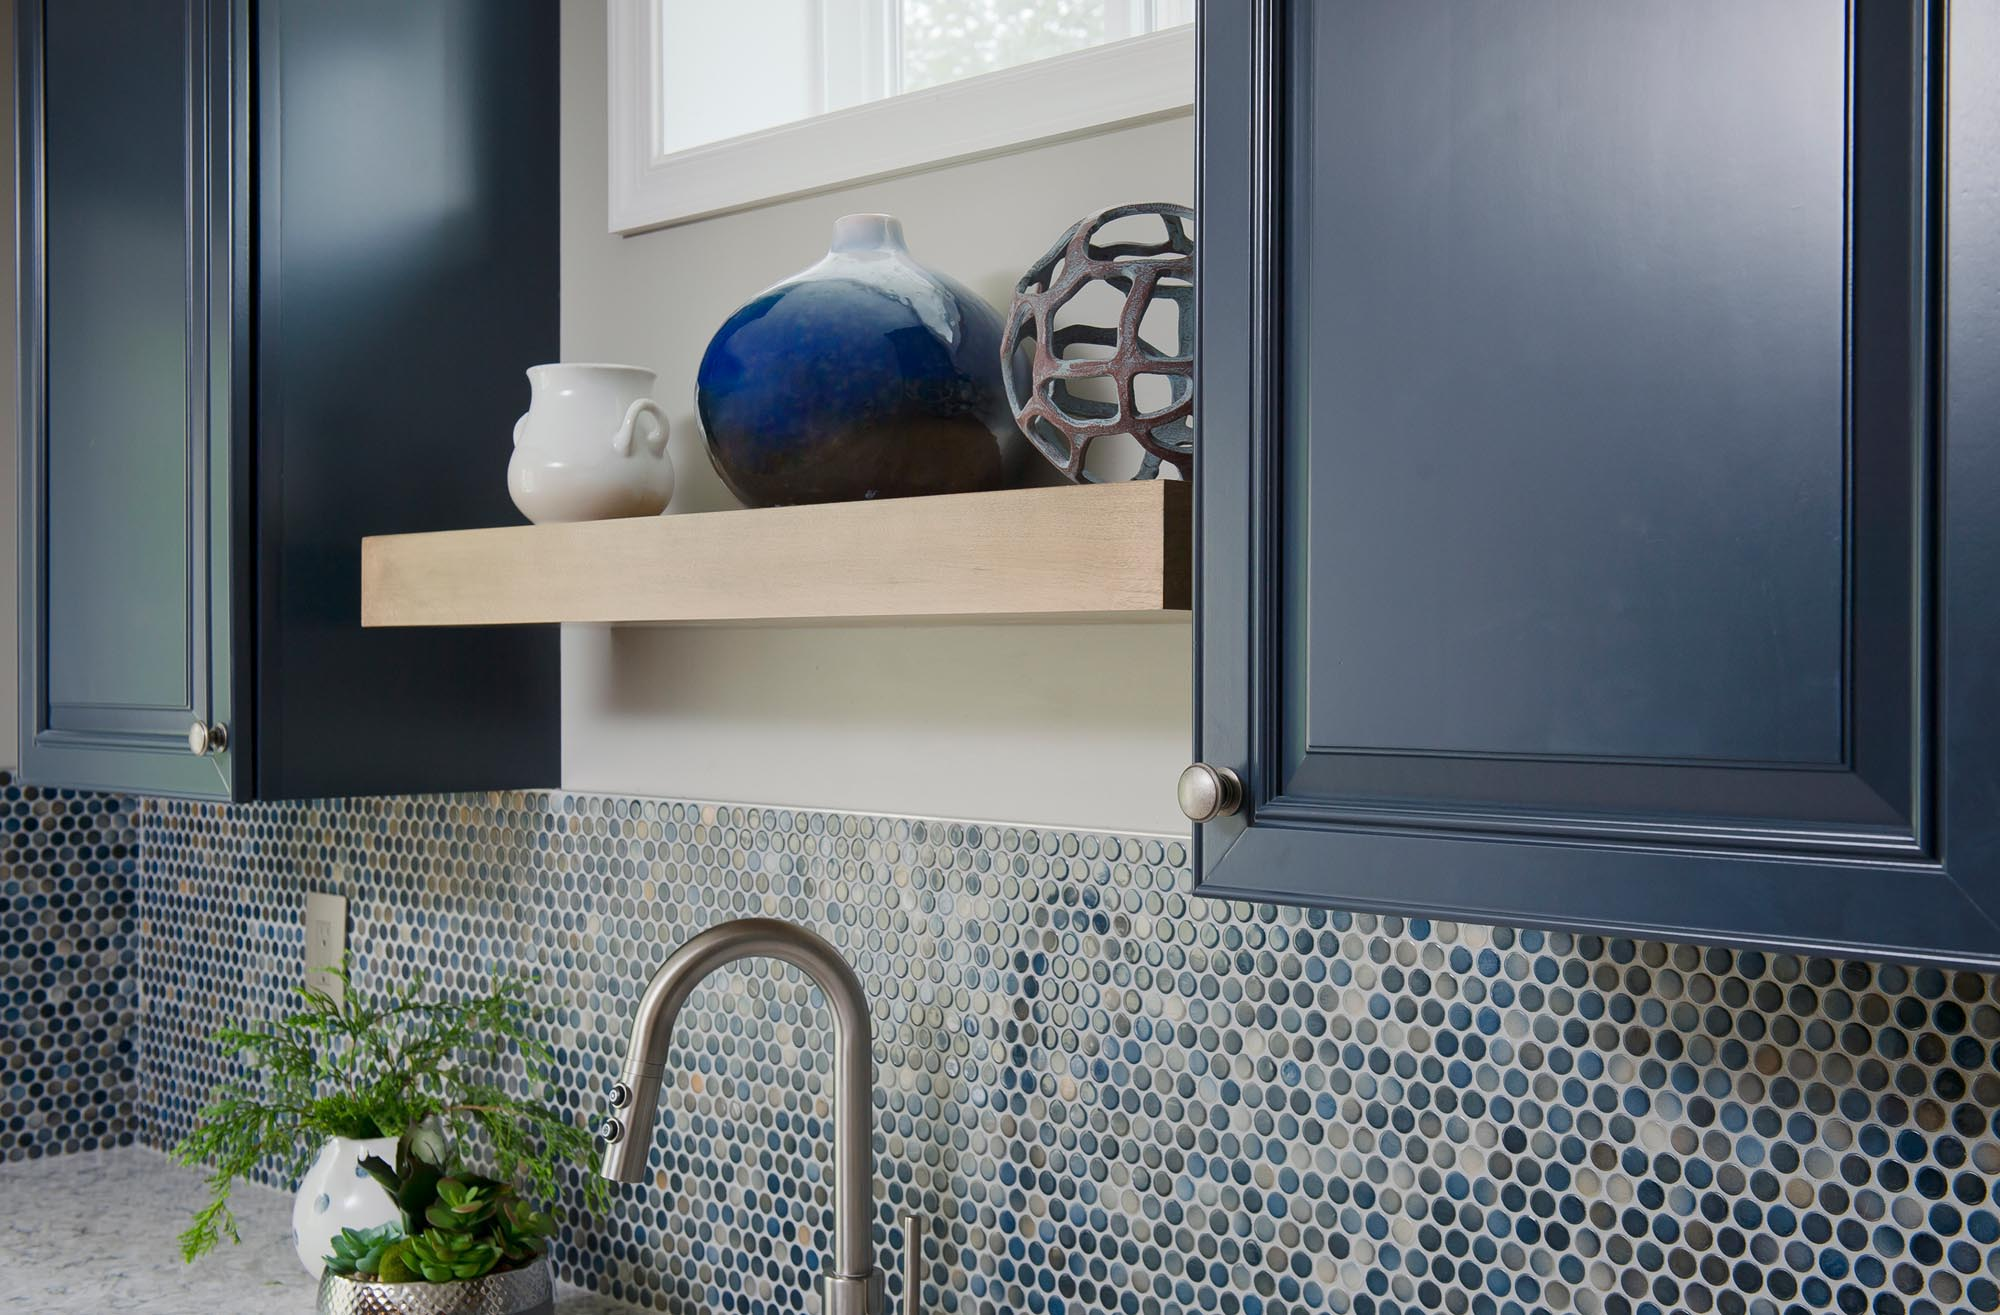 Sink with blue tiled backsplash and small potted plants